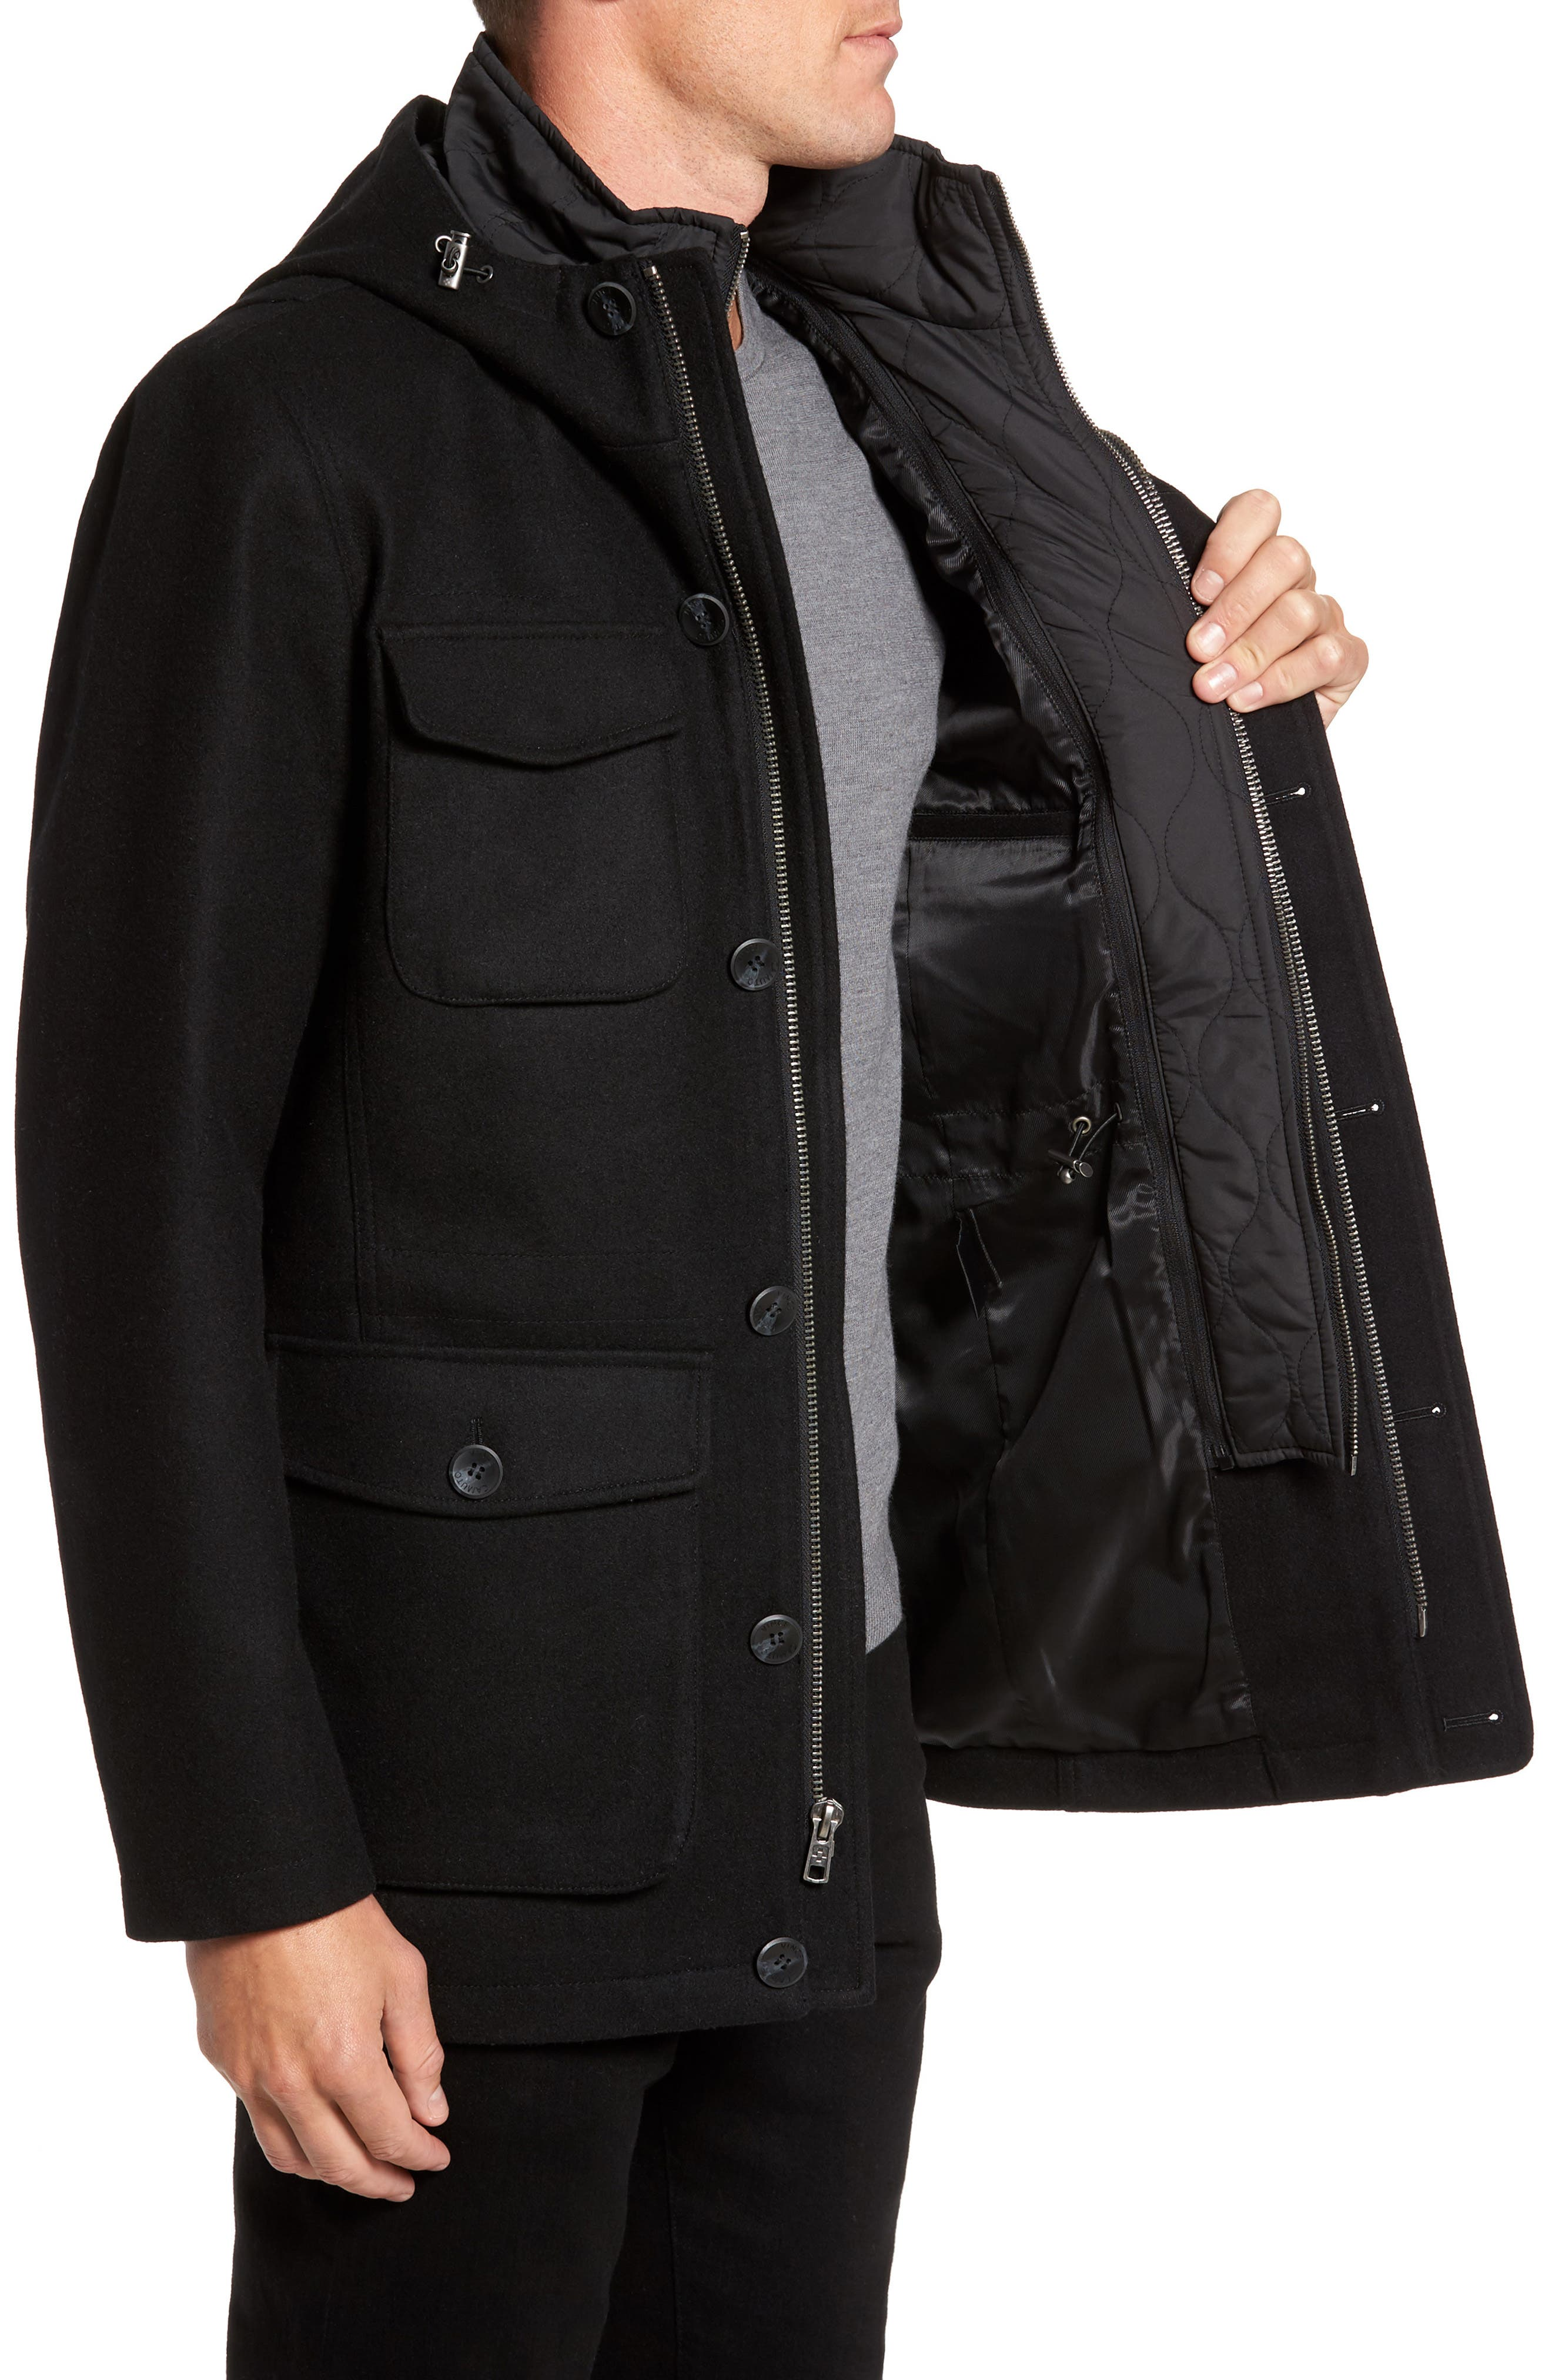 Hooded Jacket with Removable Bib,                             Alternate thumbnail 3, color,                             001